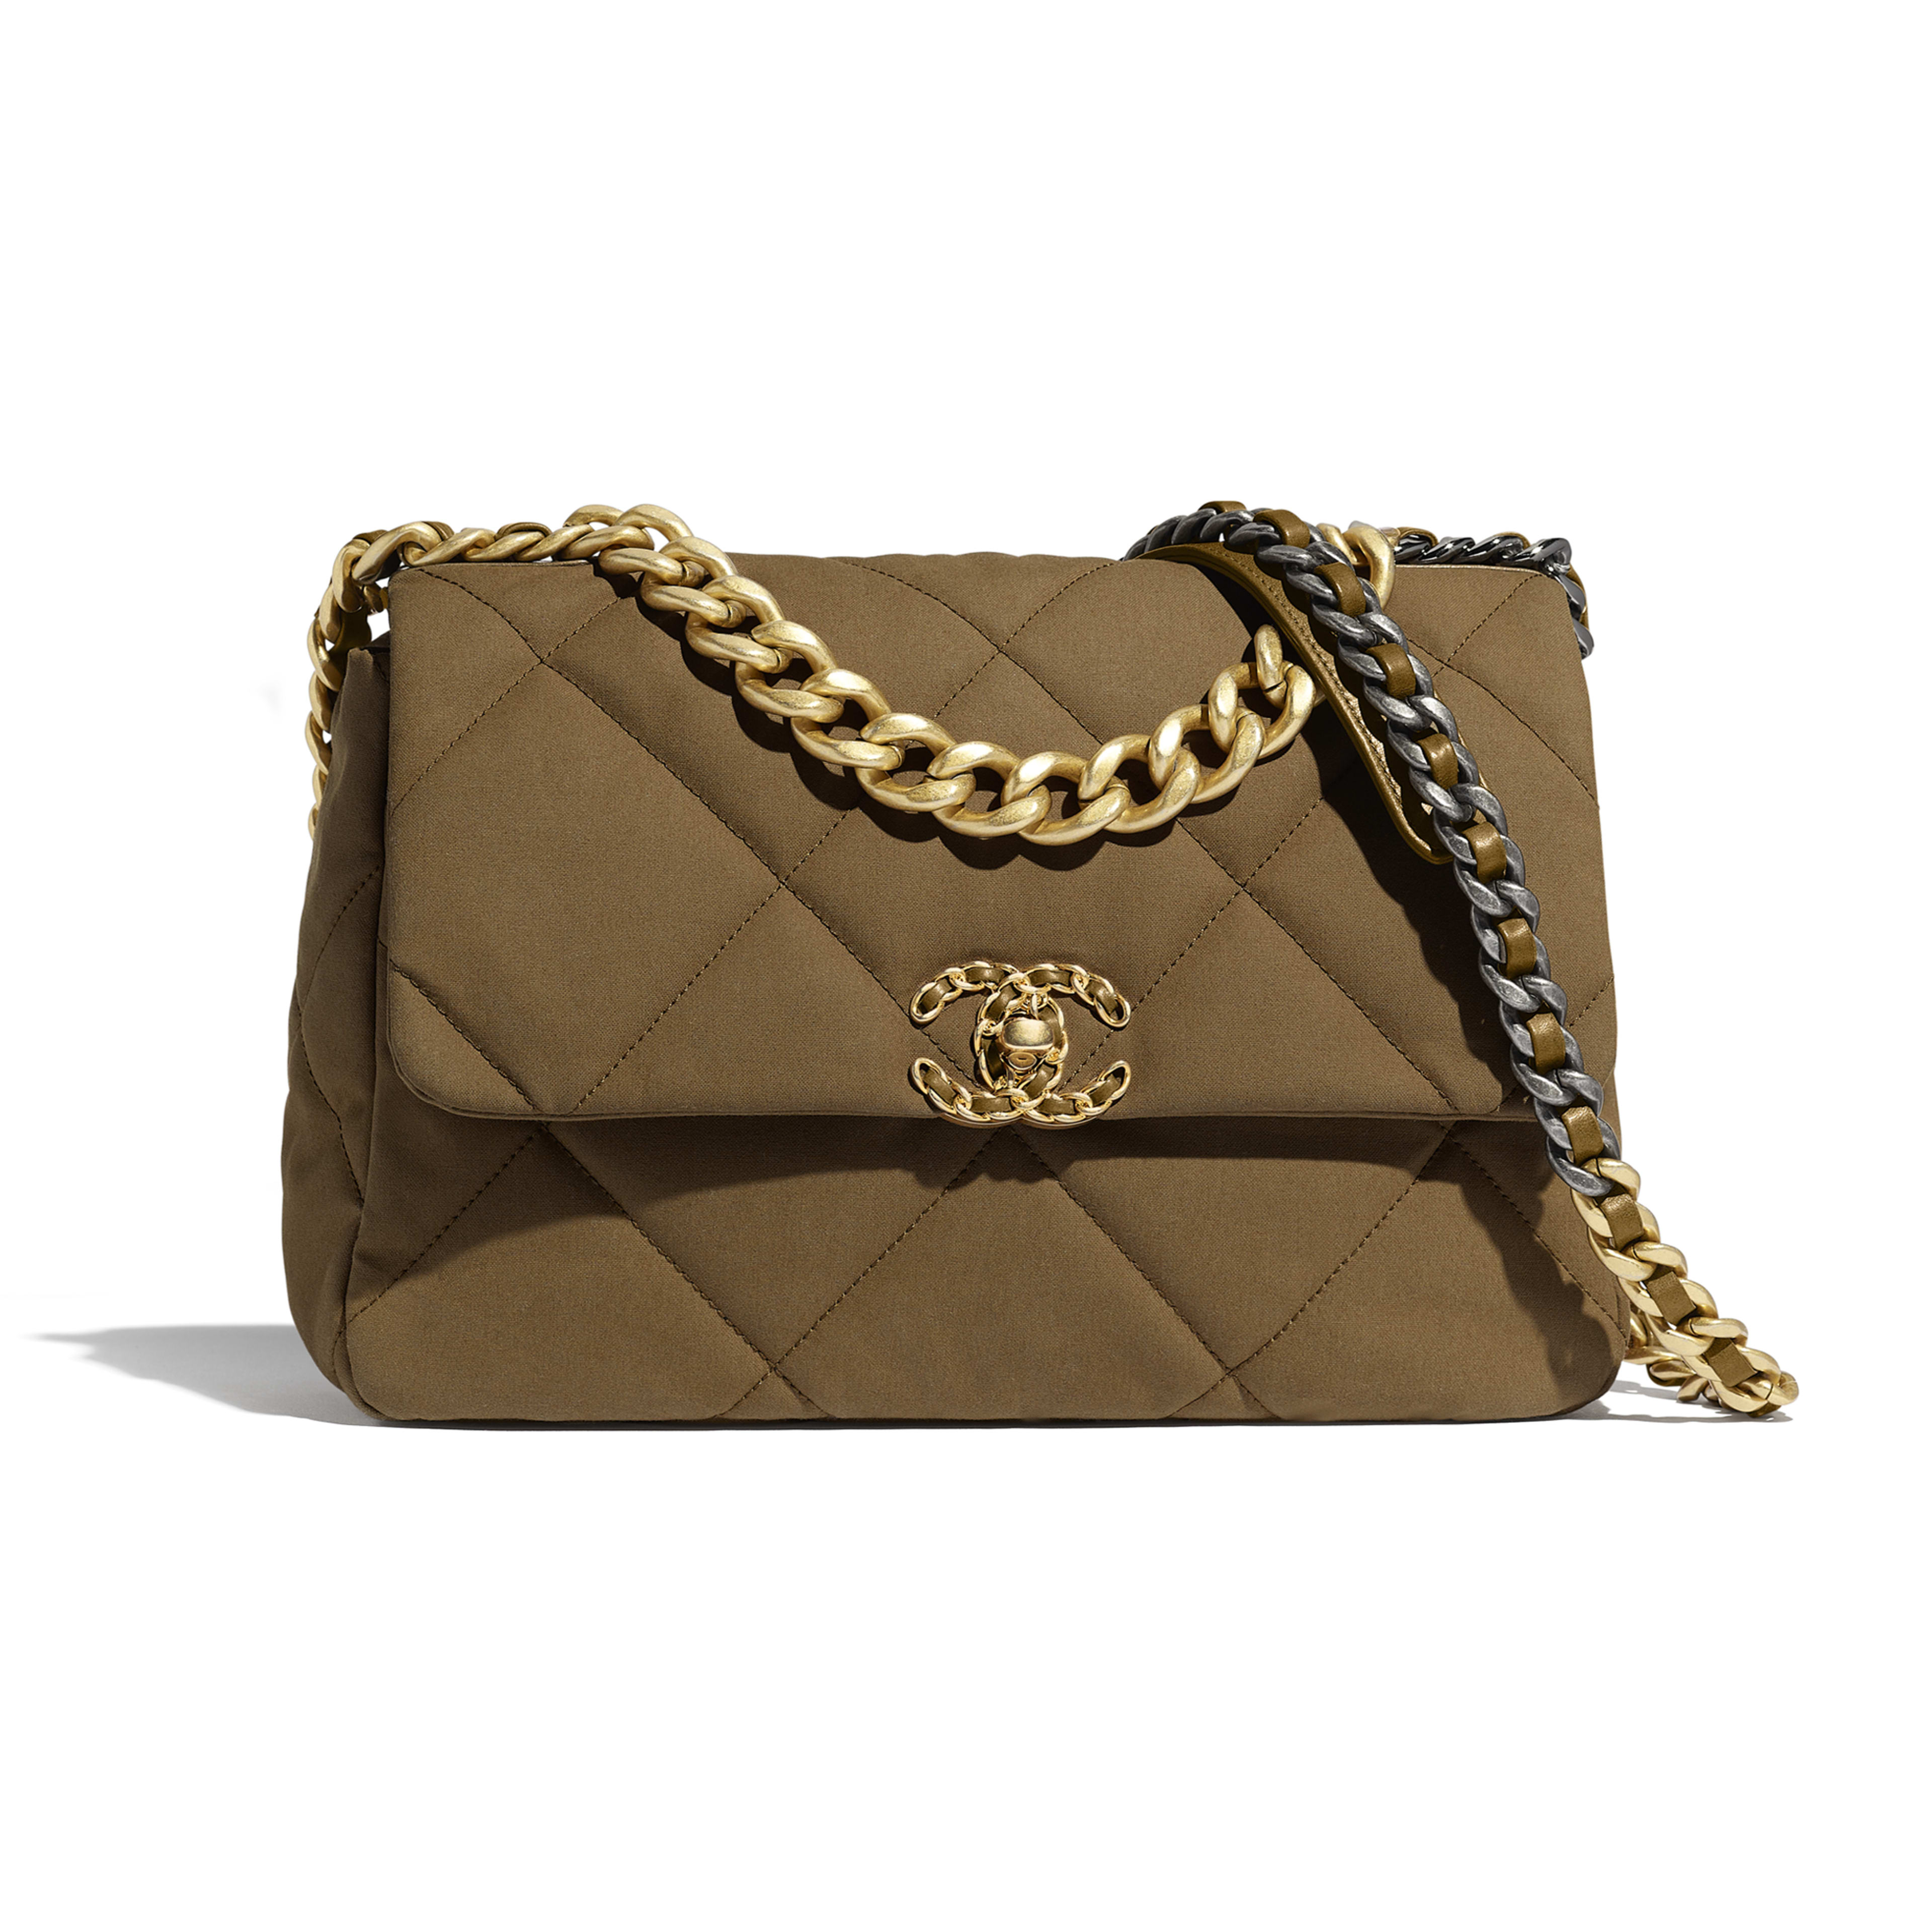 CHANEL 19 Large Flap Bag - Bronze - Cotton Canvas, Calfskin, Gold-Tone, Silver-Tone & Ruthenium-Finish Metal - Default view - see full sized version